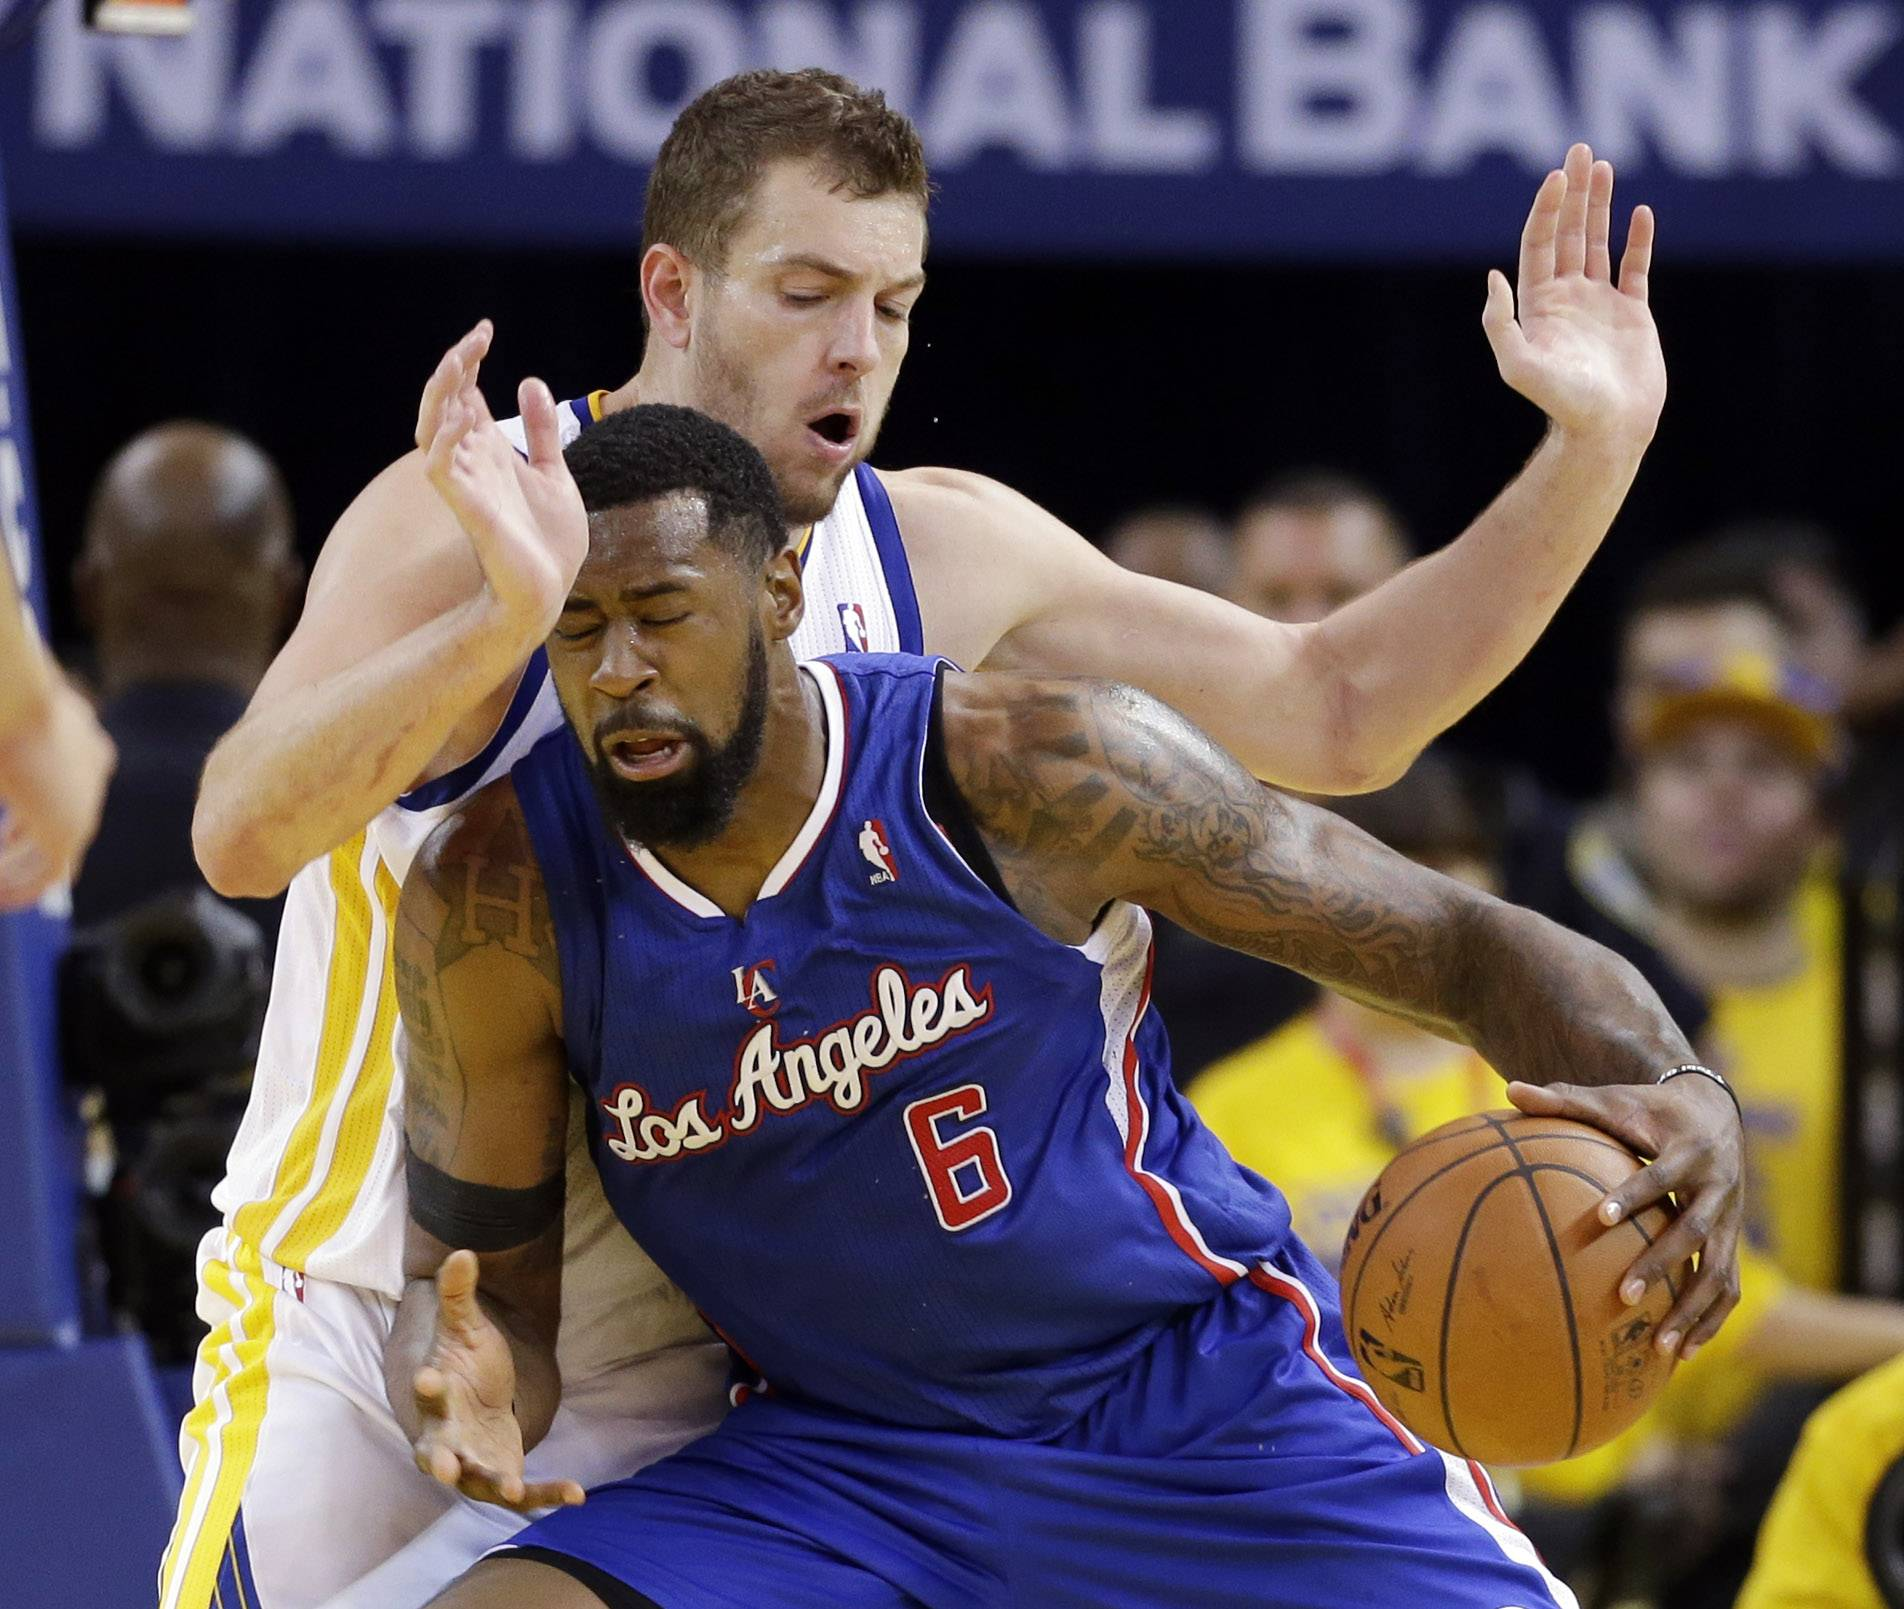 Los Angeles Clippers' DeAndre Jordan (6) is defended by Golden State Warriors' David Lee during the second half in Game 4 of an opening-round NBA basketball playoff series on Sunday, April 27, 2014, in Oakland, Calif. Golden State won 118-97.